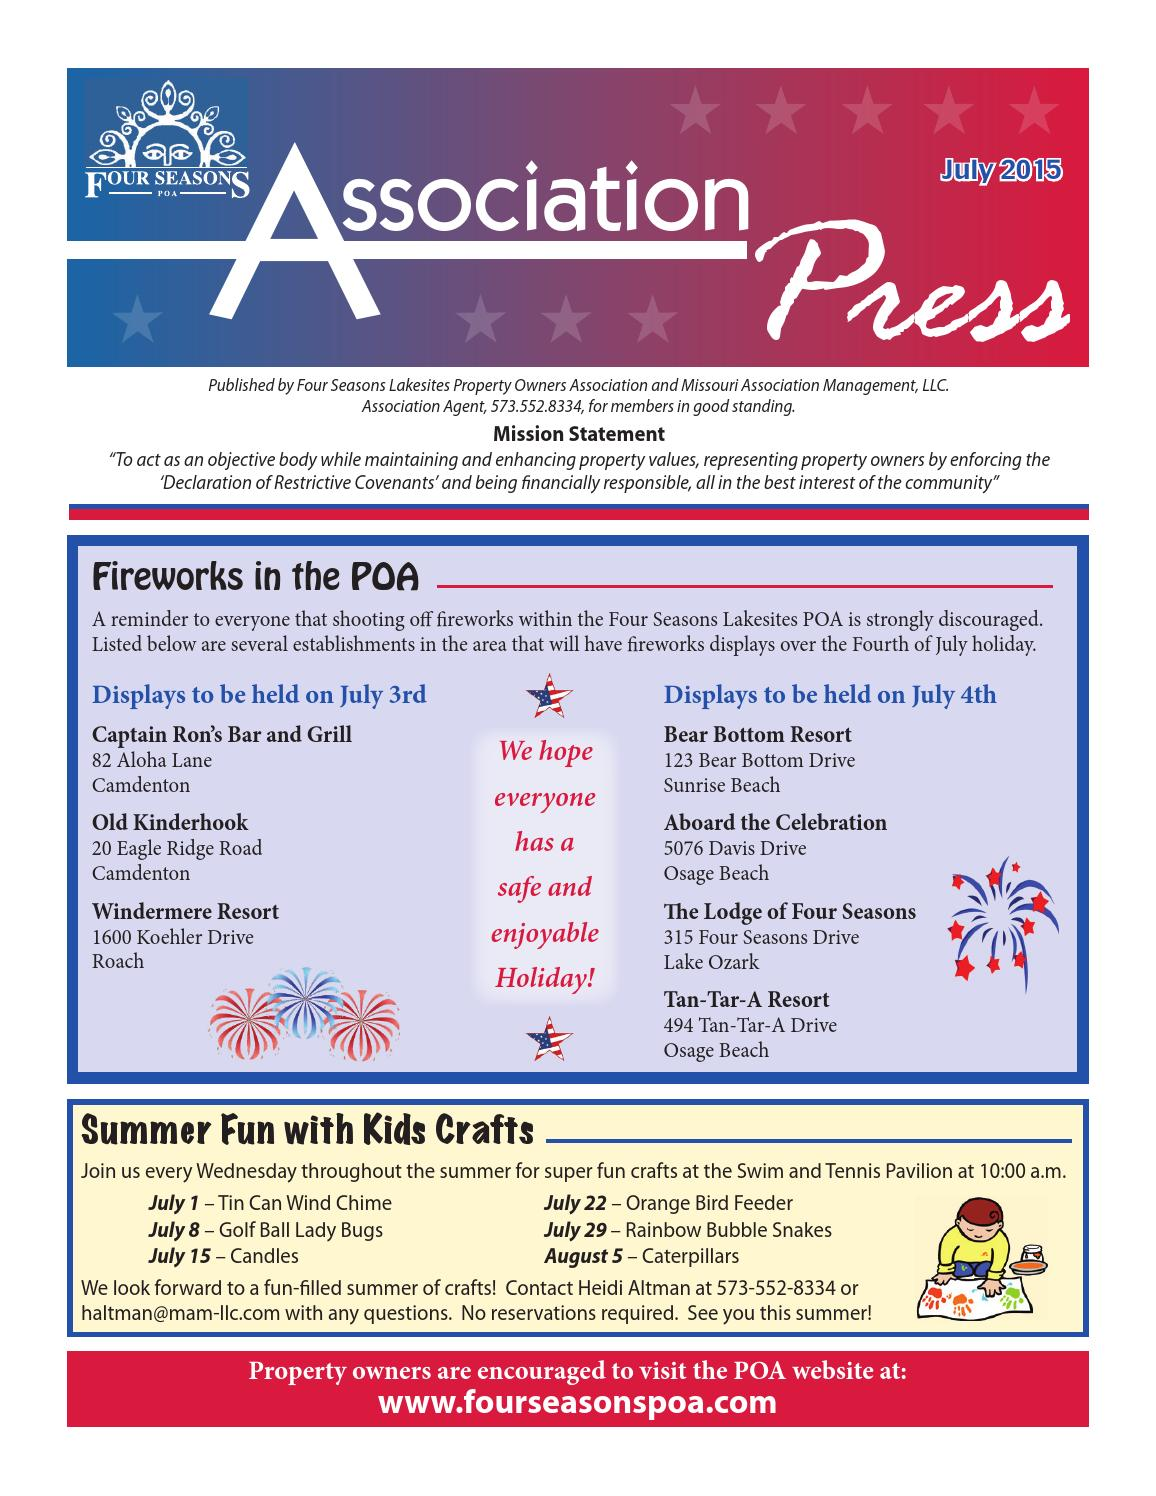 July 2015 Association Press By Four Seasons Poa Issuu